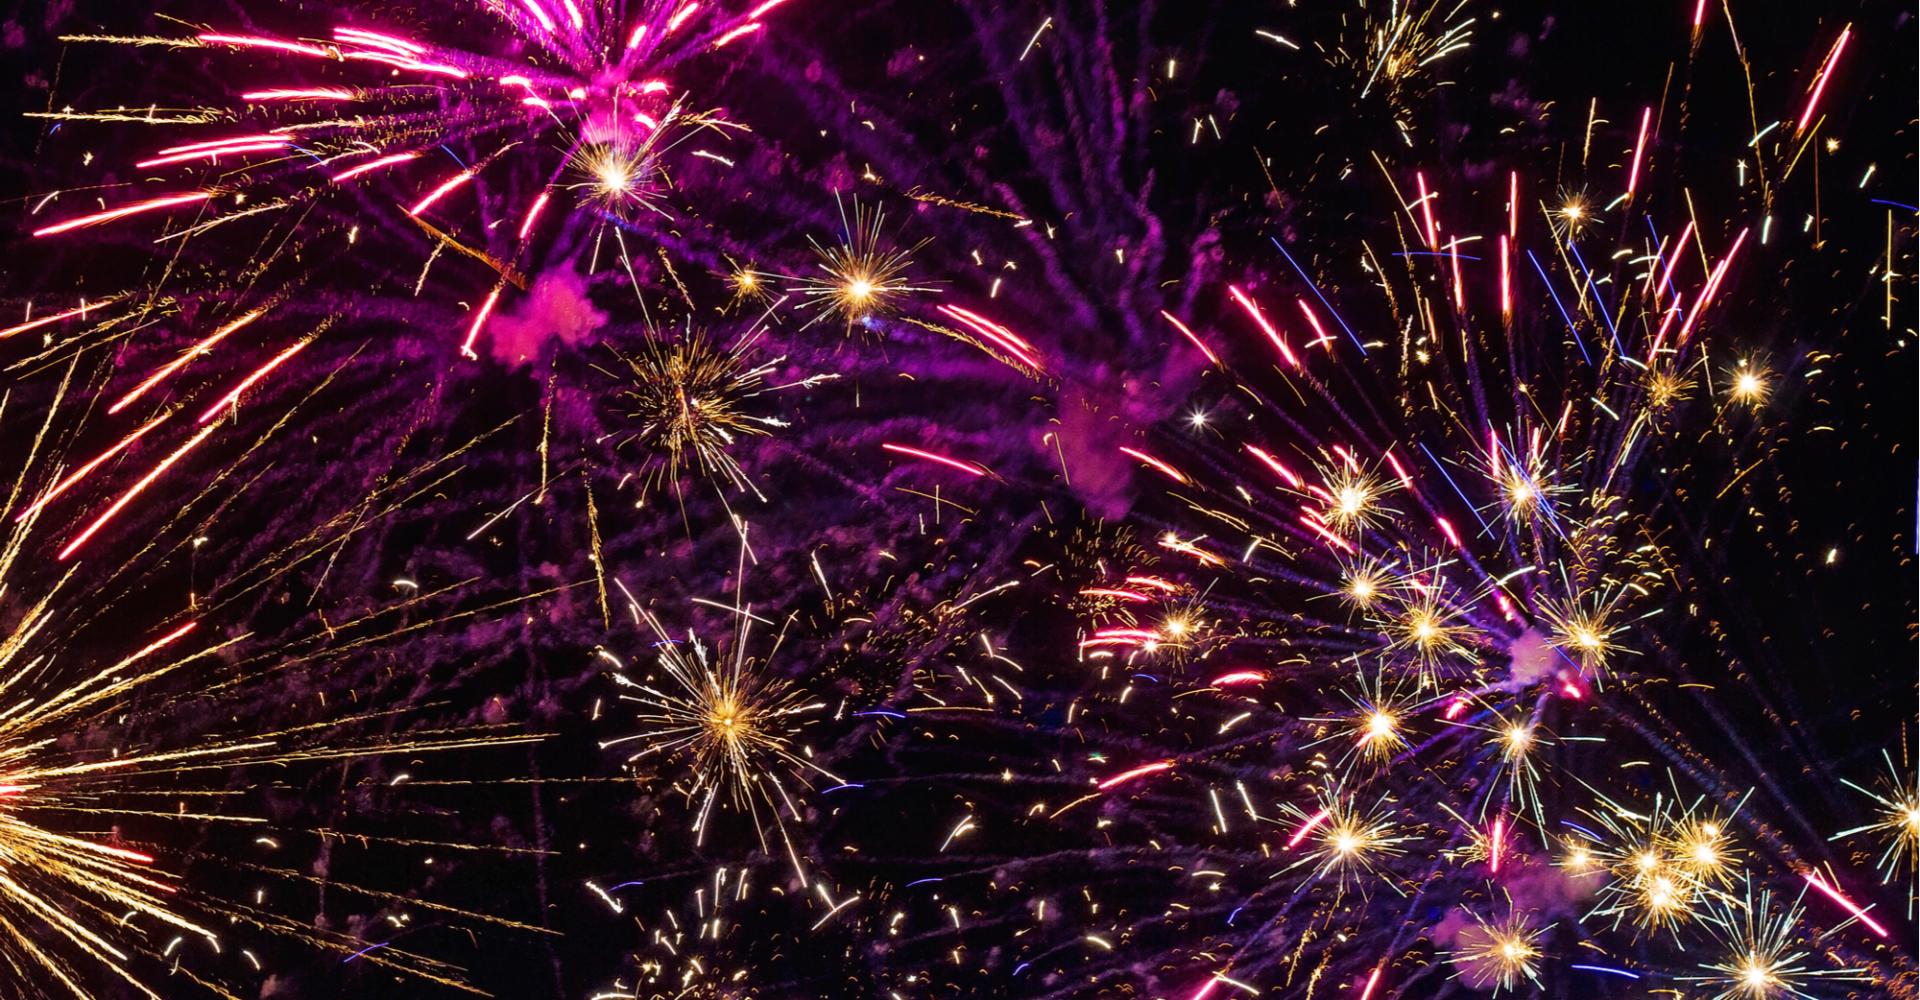 Colorful 4th of July fireworks fill the night sky